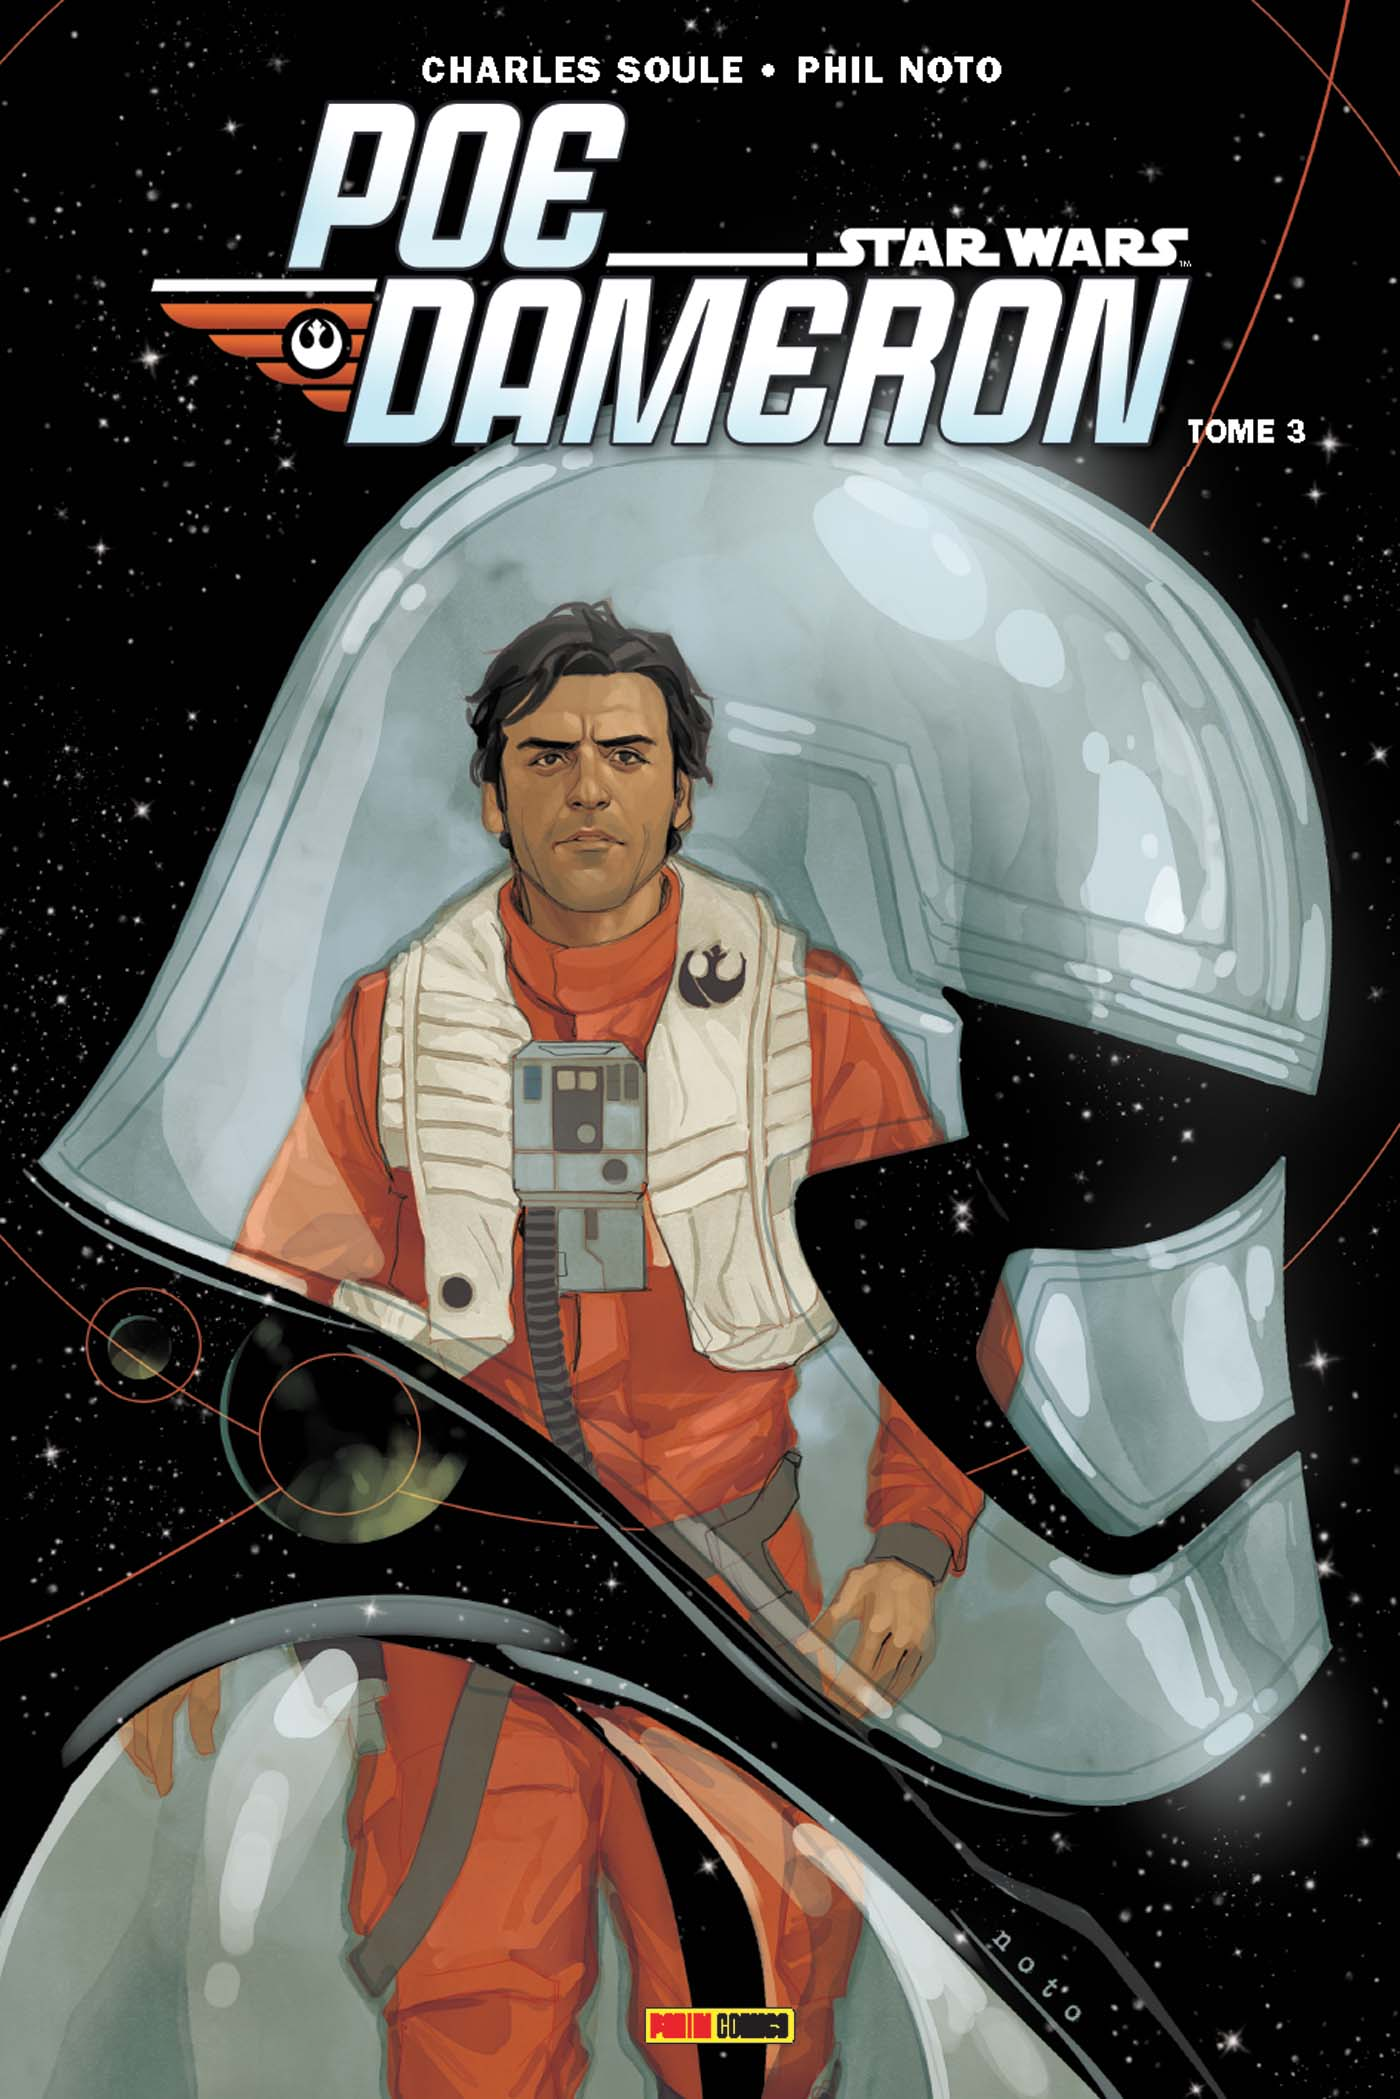 100% Star Wars - <a href='/personnage-2875-poe-dameron.html' class='qtip_motcle' tt_type='personnage' tt_id=2875>Poe Dameron</a> T3  La <a href='/livre-492-tempete.html' class='qtip_motcle' tt_type='livre' tt_id=492>Tempête</a> Approche